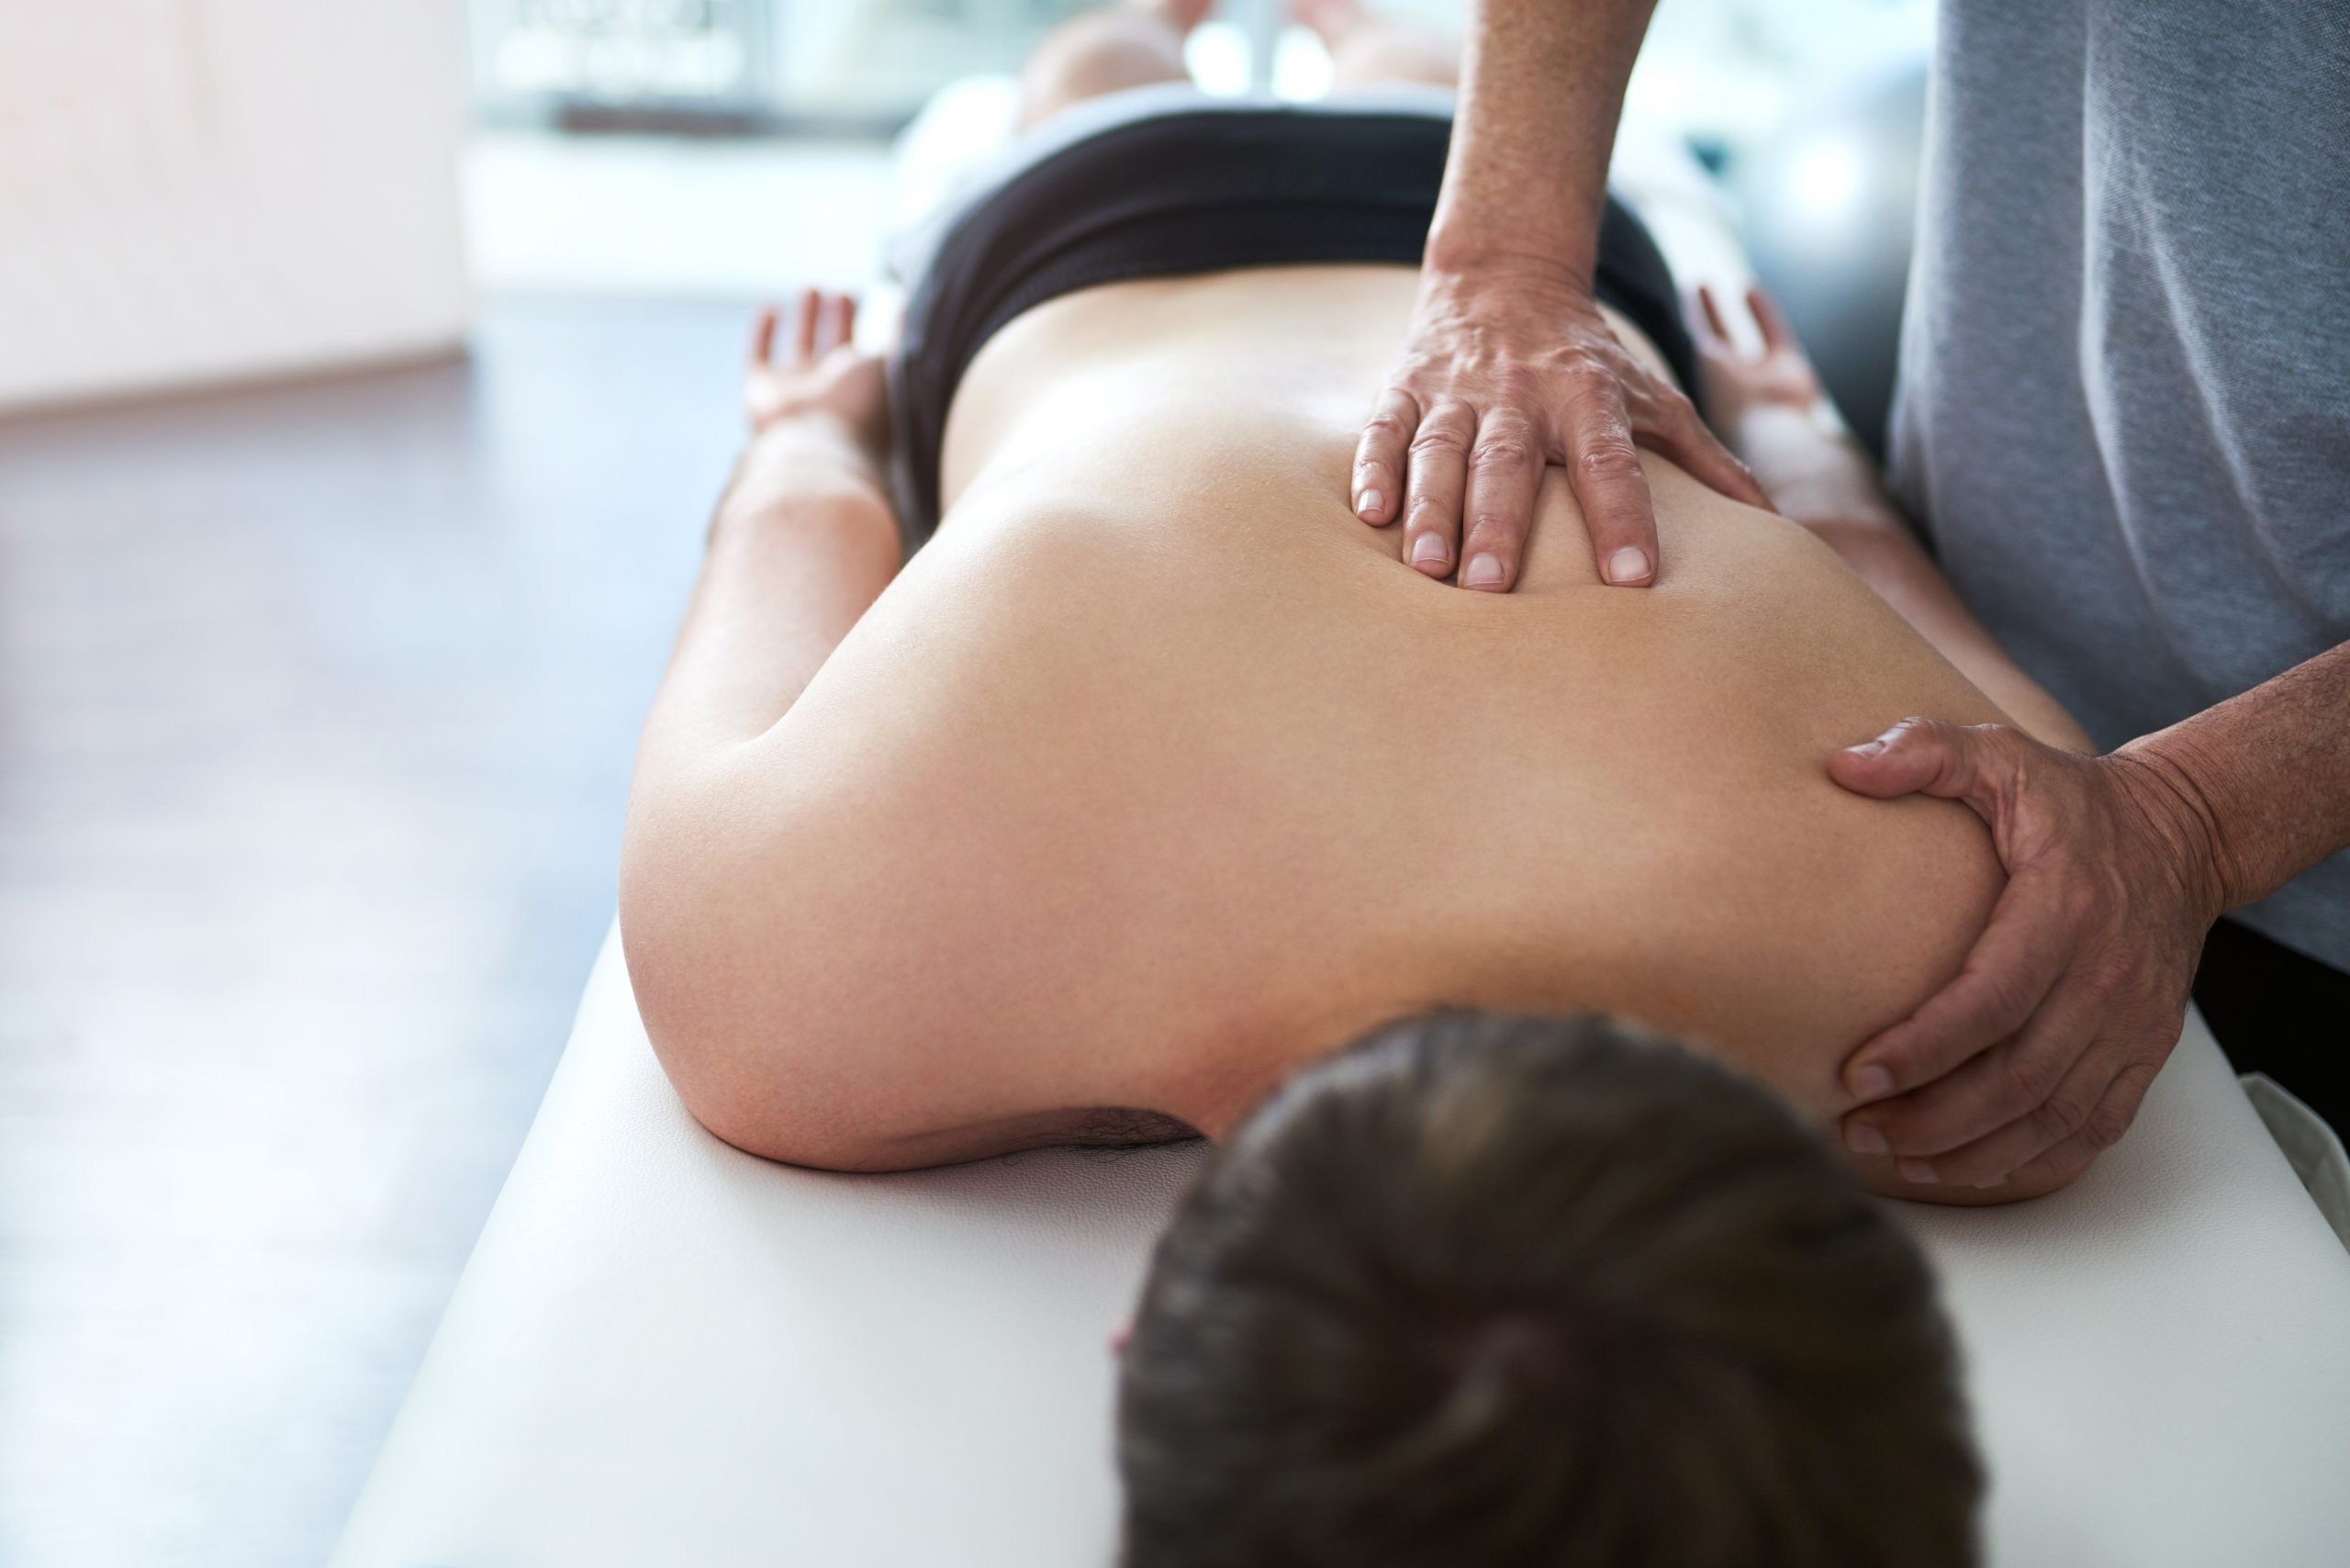 Physiotherapist or massage therapist performing soft tissue work on a patient's back during a visit at Absolute Health and Wellness in Paris Ontario